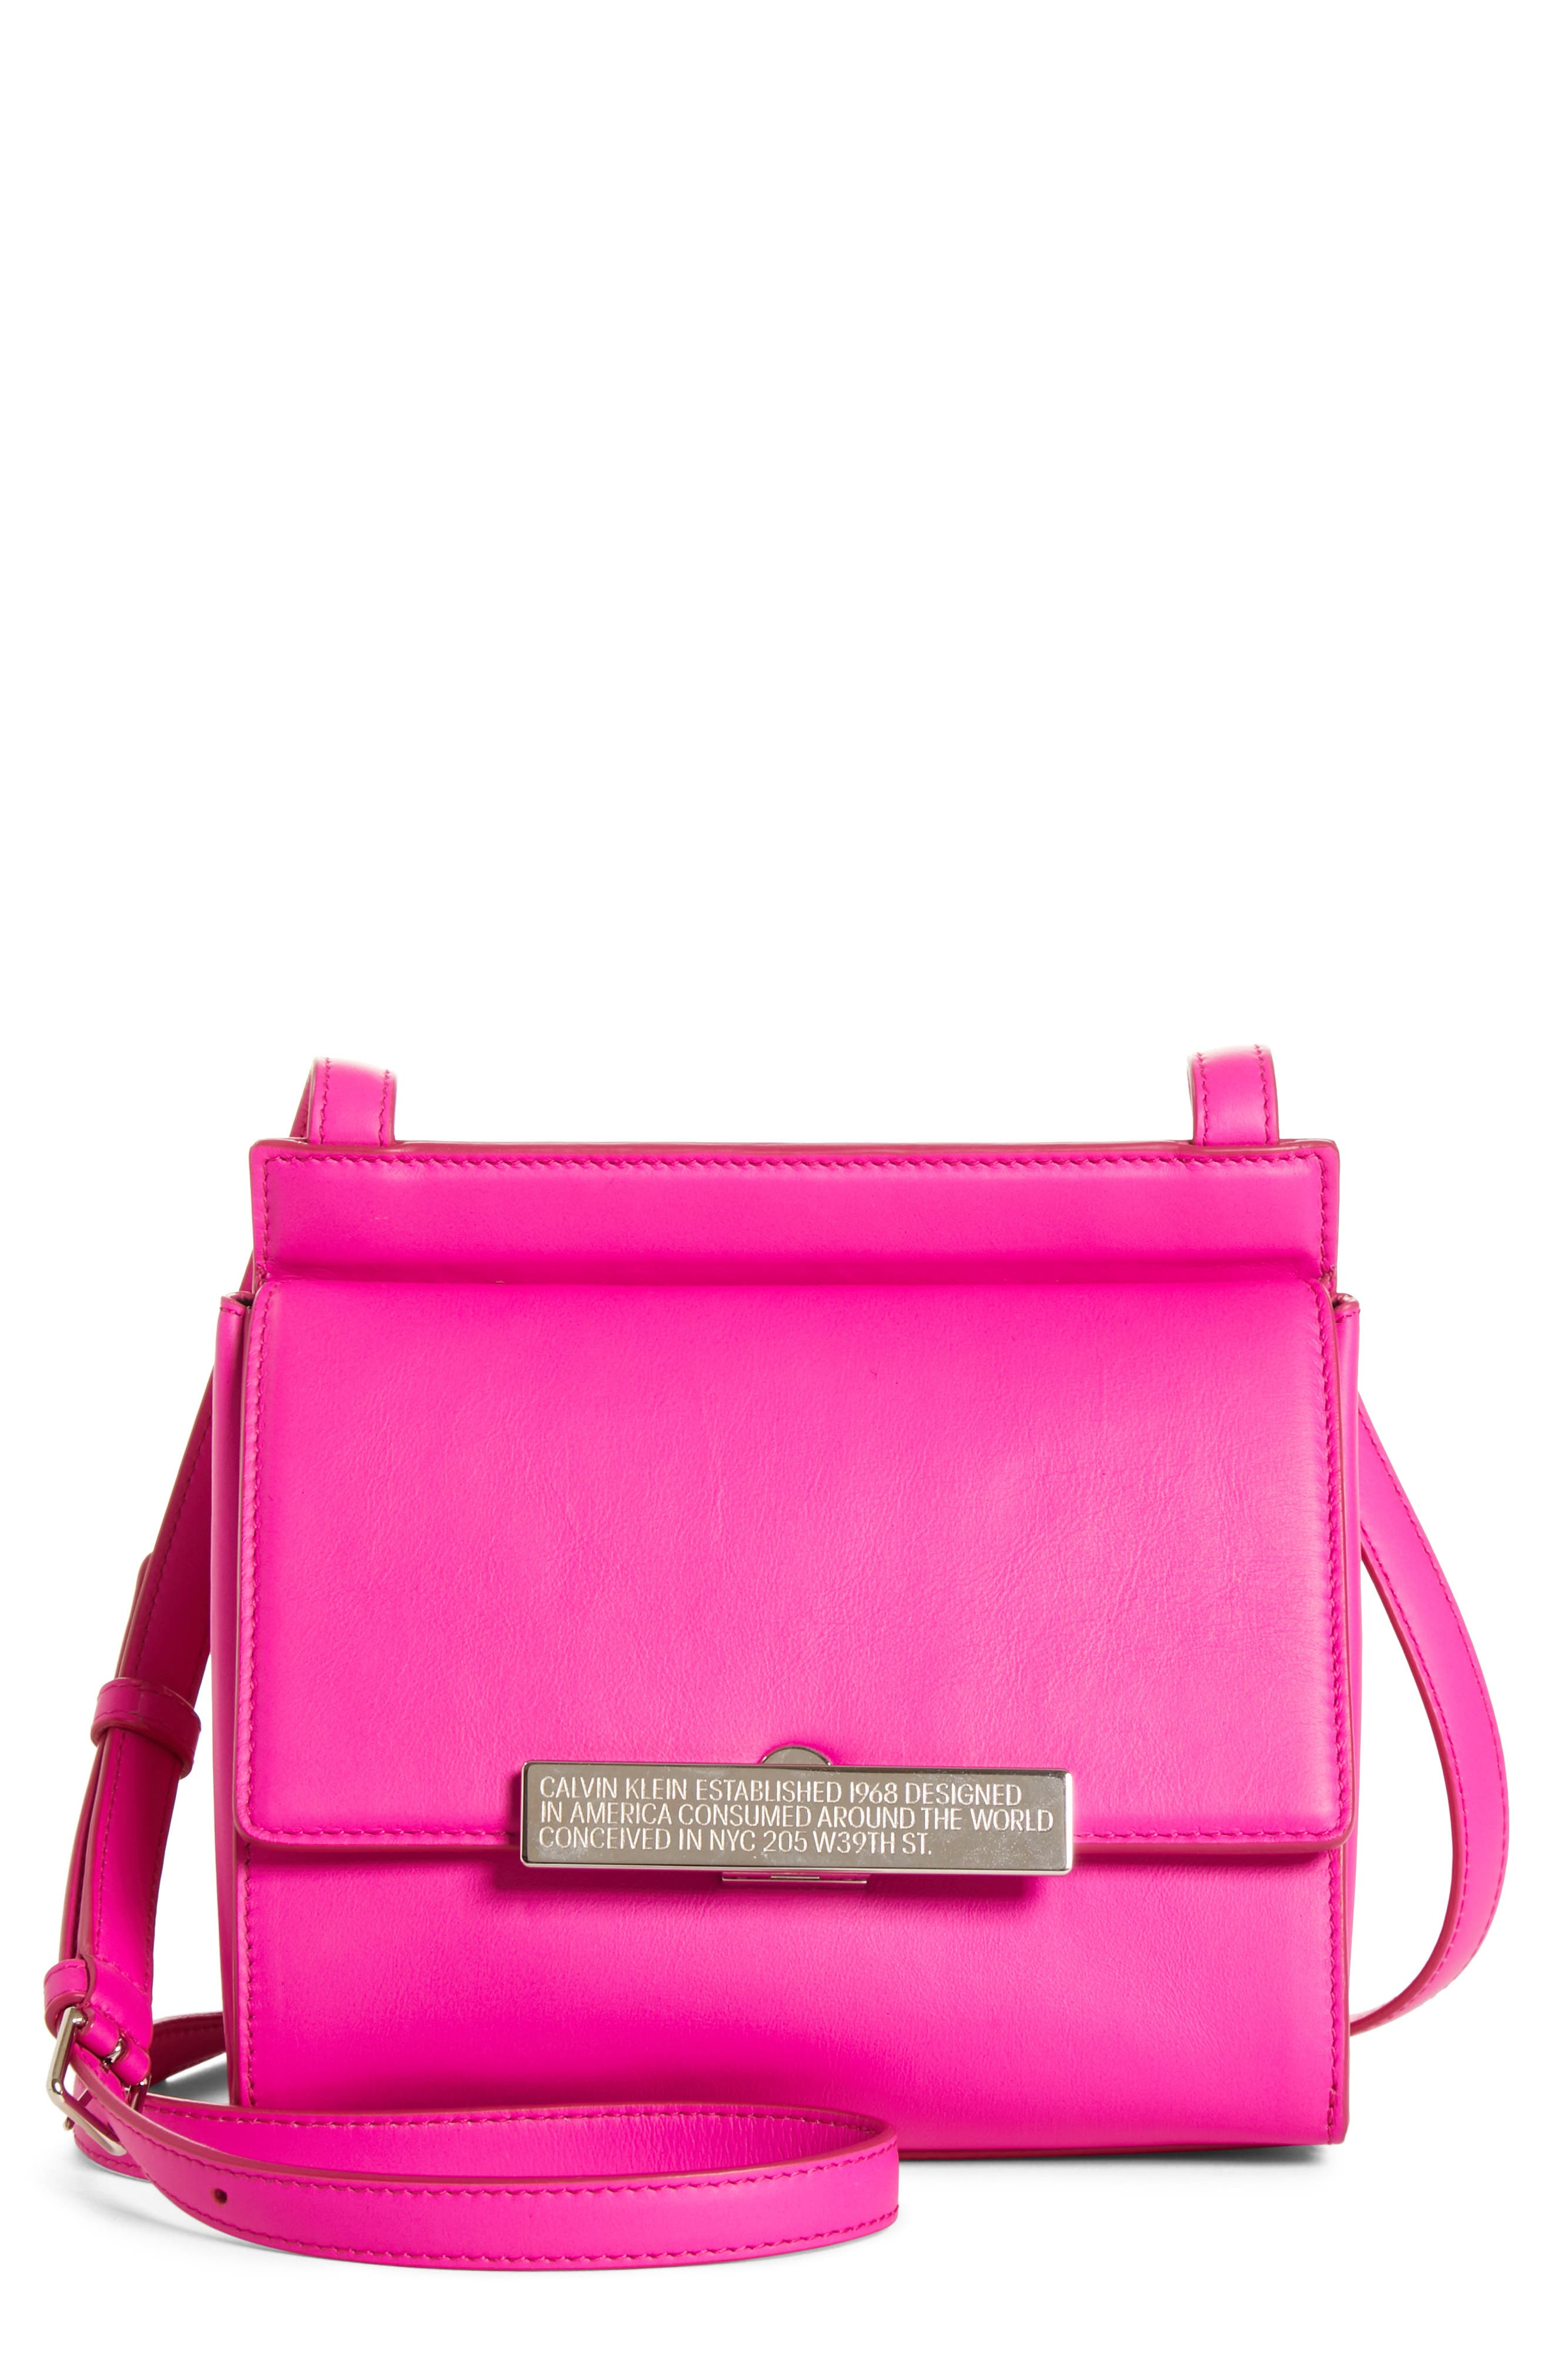 CALVIN KLEIN 205W39NYC, Starr Leather Crossbody, Main thumbnail 1, color, SHOCKING